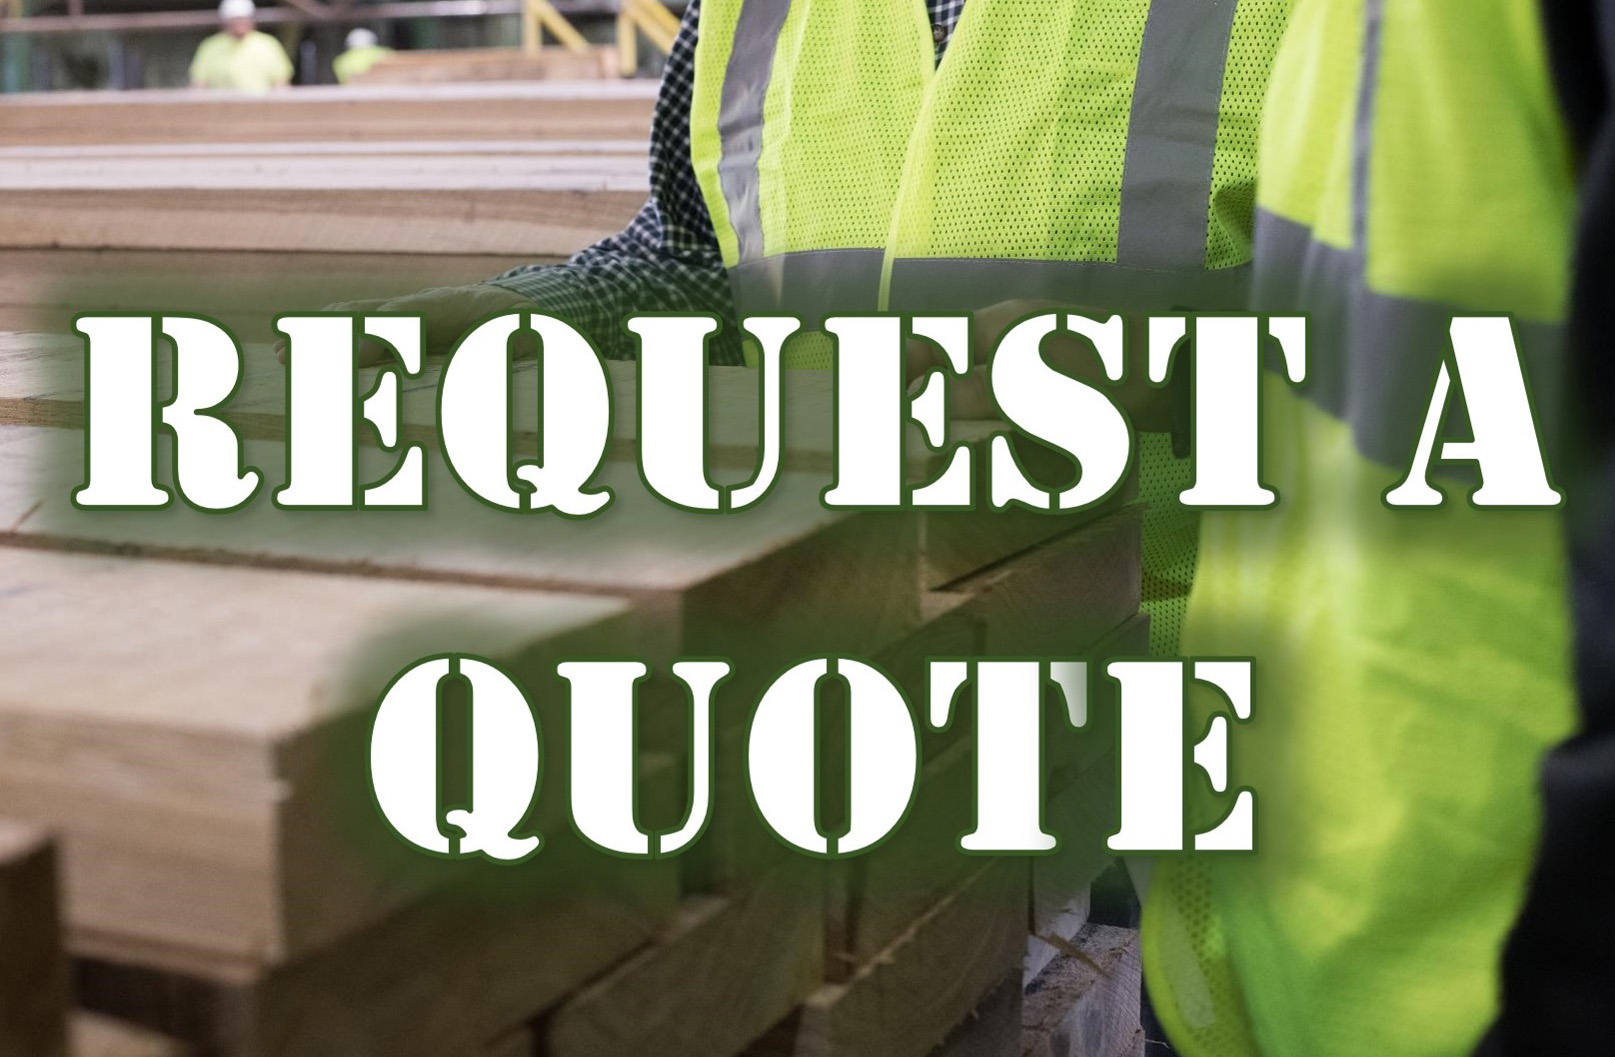 request a quote 2020a